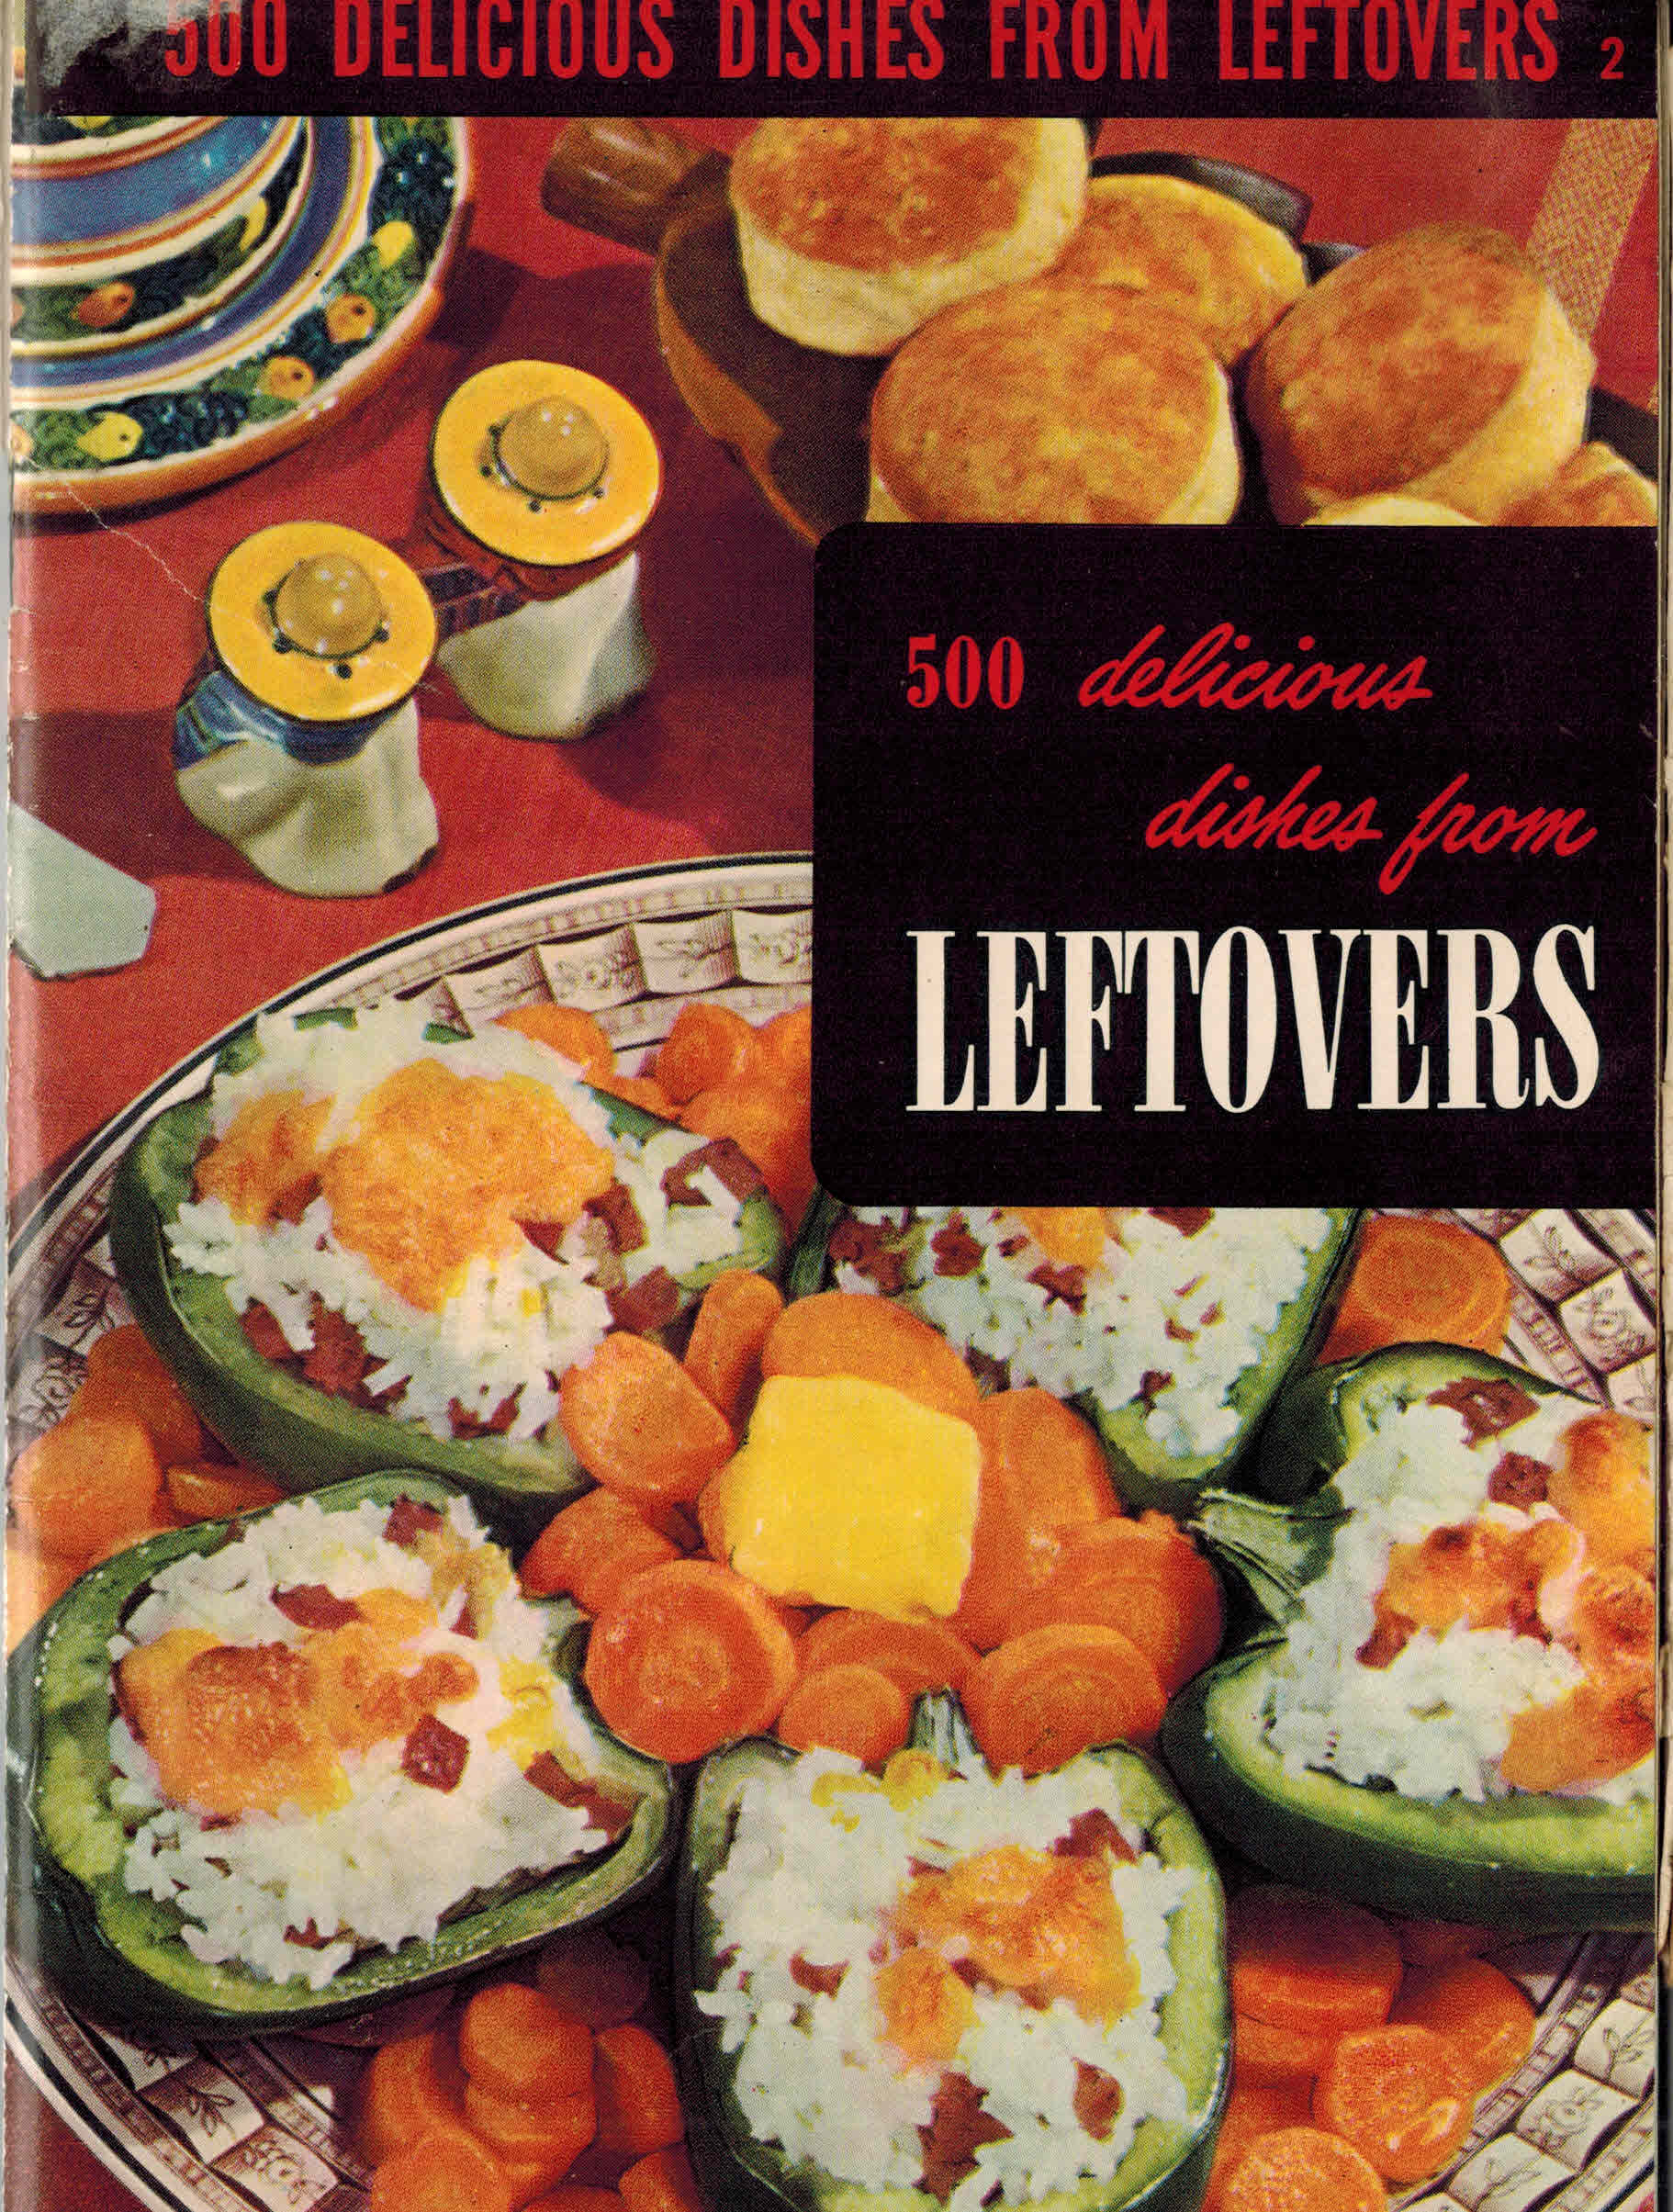 Image for 500 Delicious Dishes from Leftovers